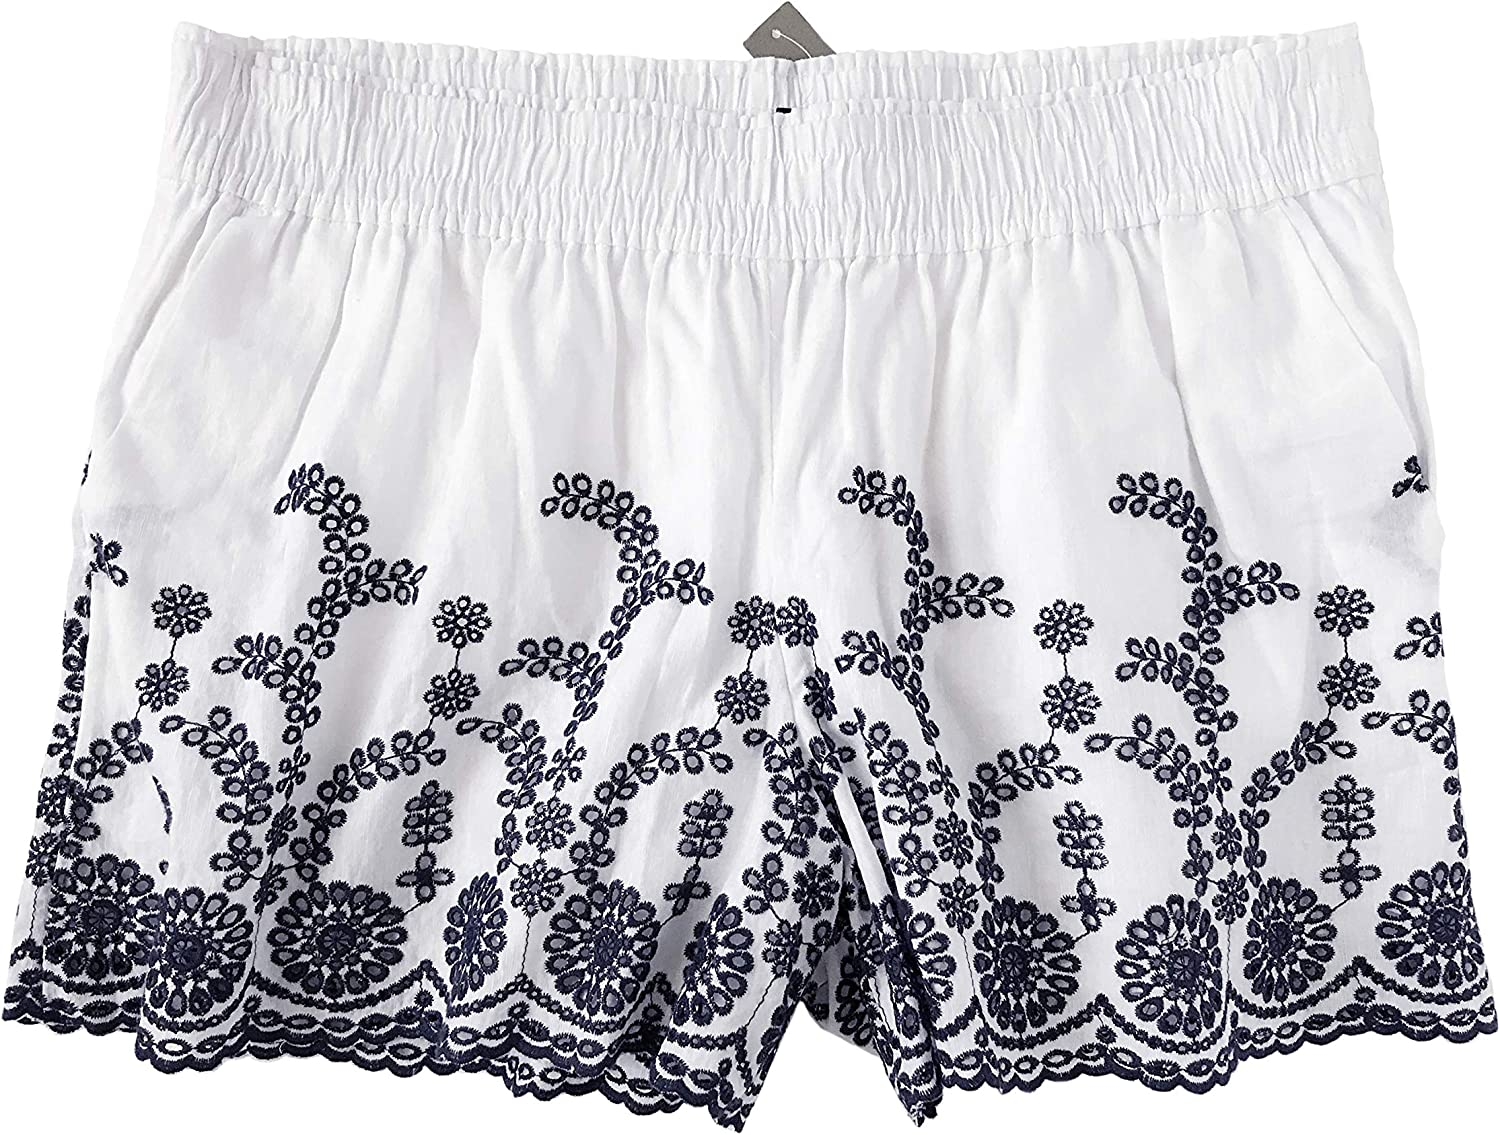 J Crew  Women's Floral Eyelet Embroidered PullOn Shorts